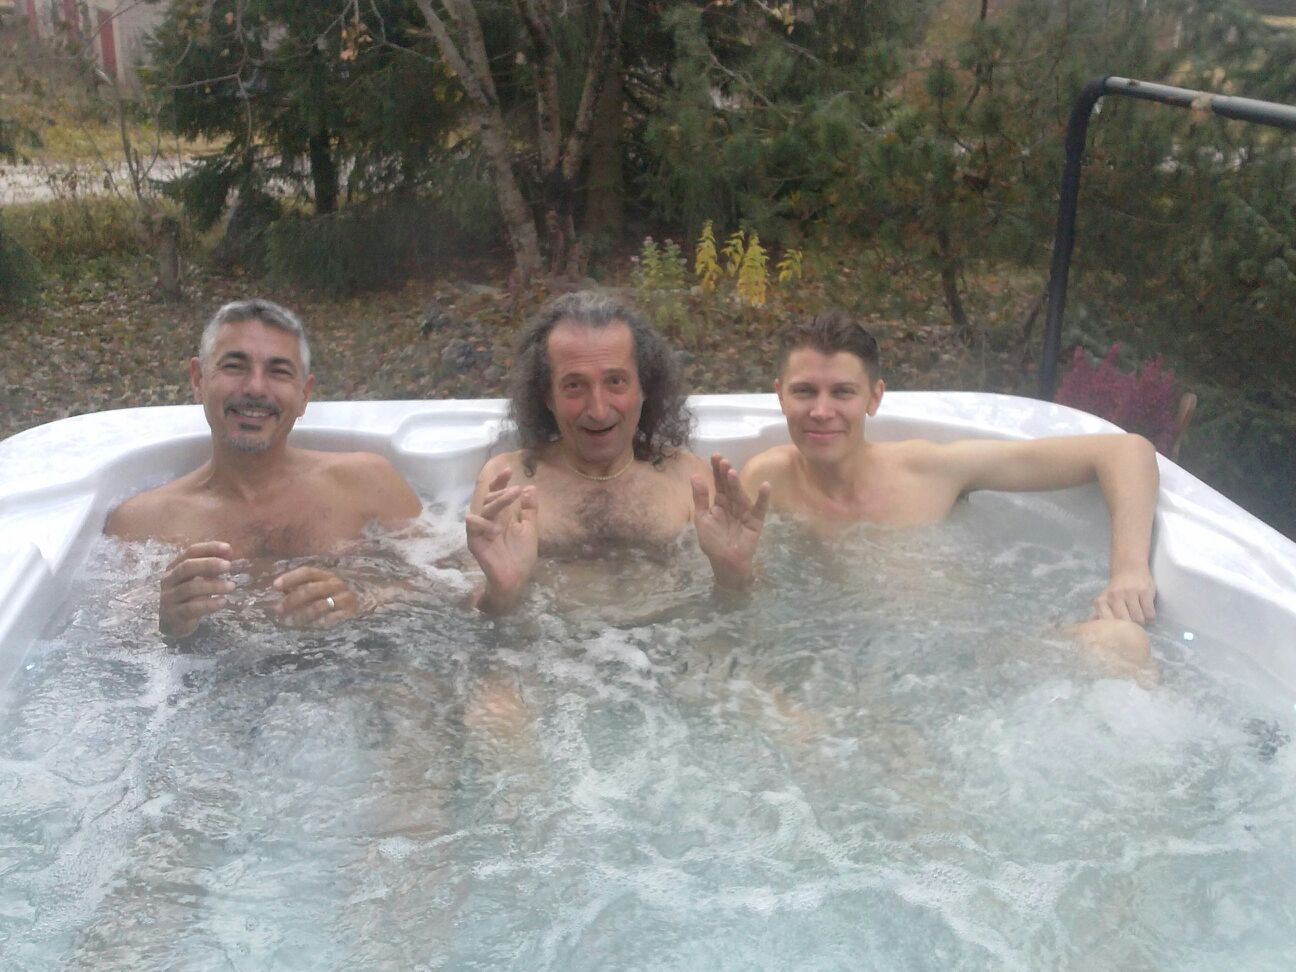 Tresoneros in the jacuzzi